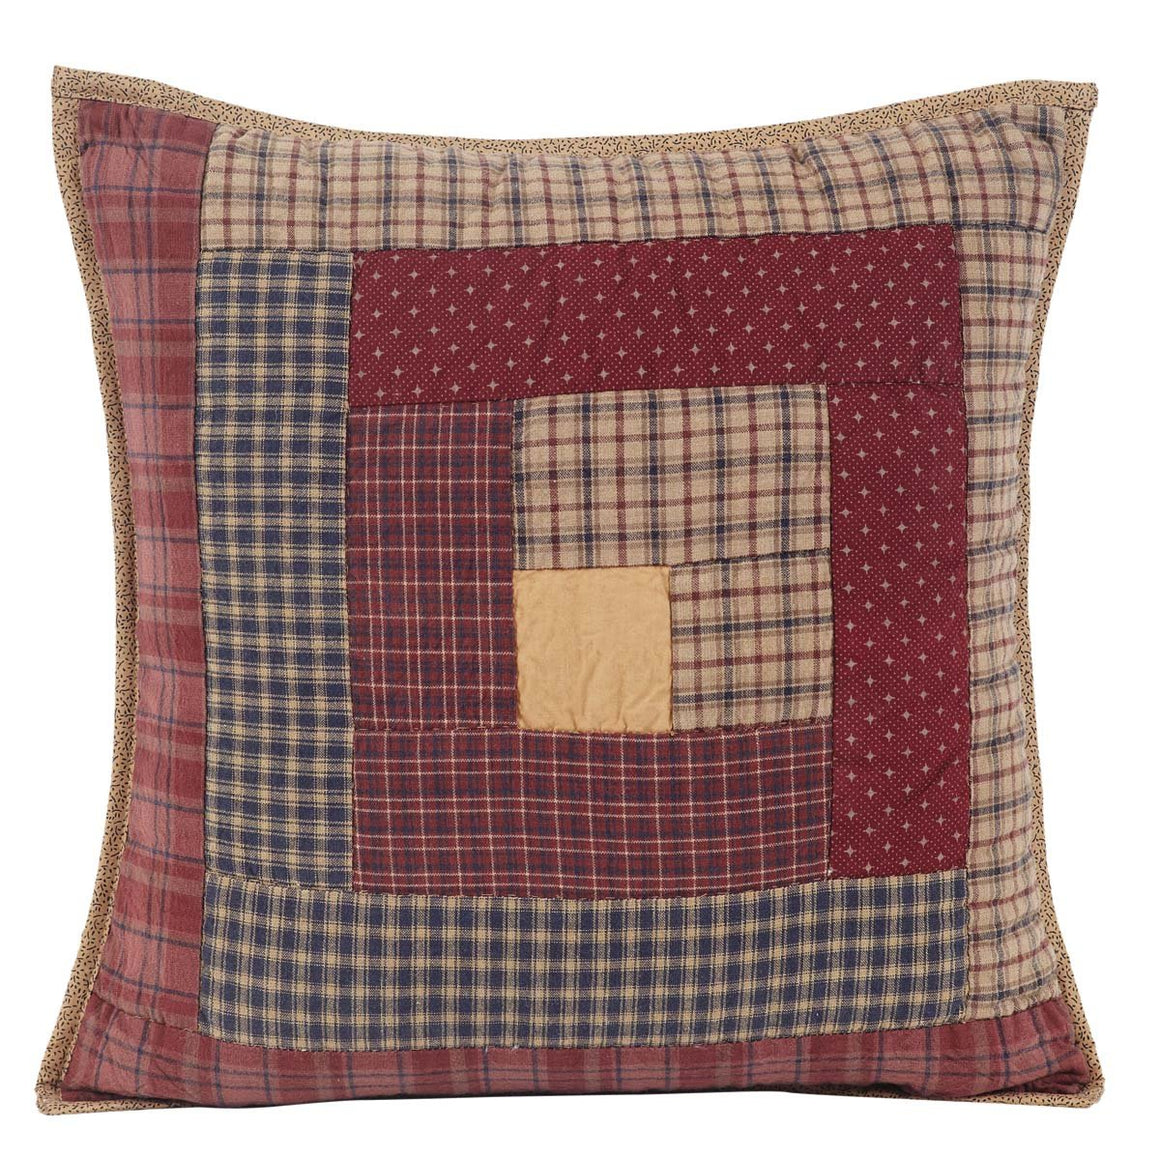 Millsboro Pillow Quilted 16x16